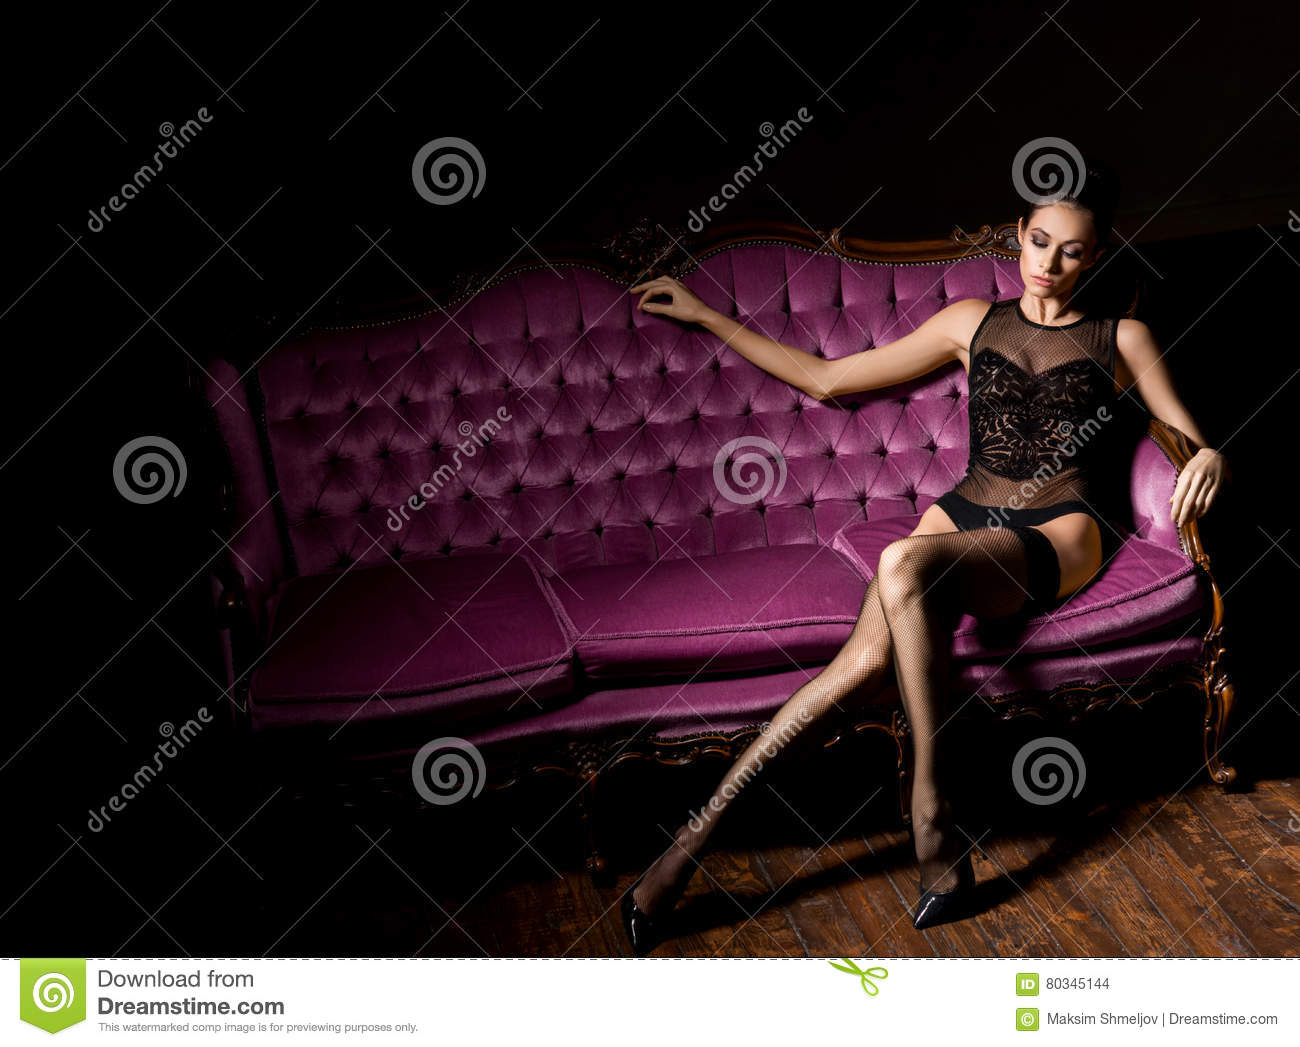 af034a933 and beautiful woman in erotic lingerie and stockings posing on a magenta  sofa in vintage interior.